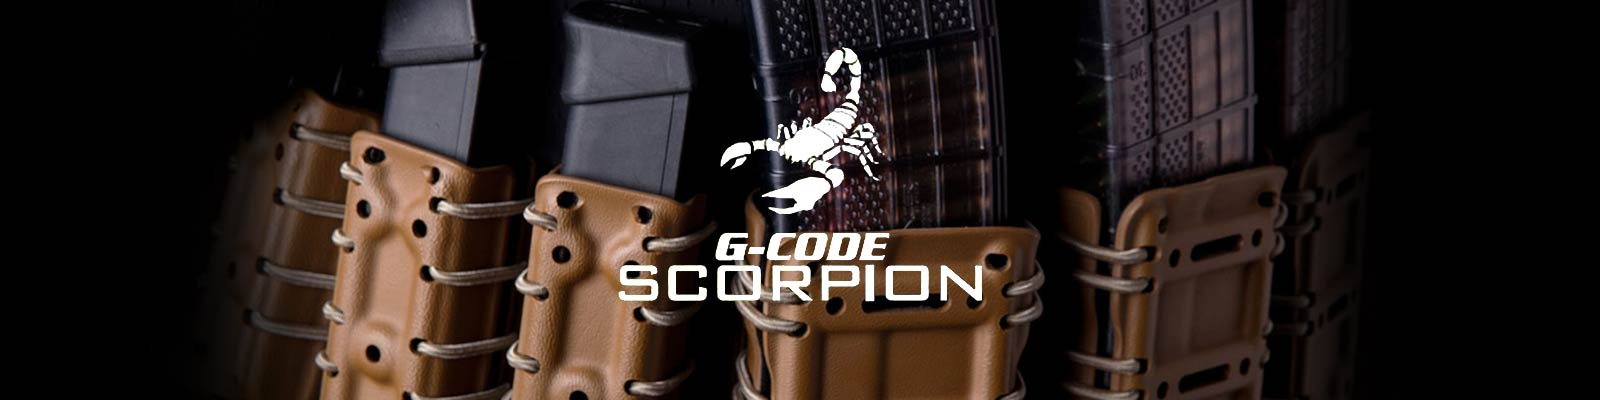 Scorpion Series Products   G-Code